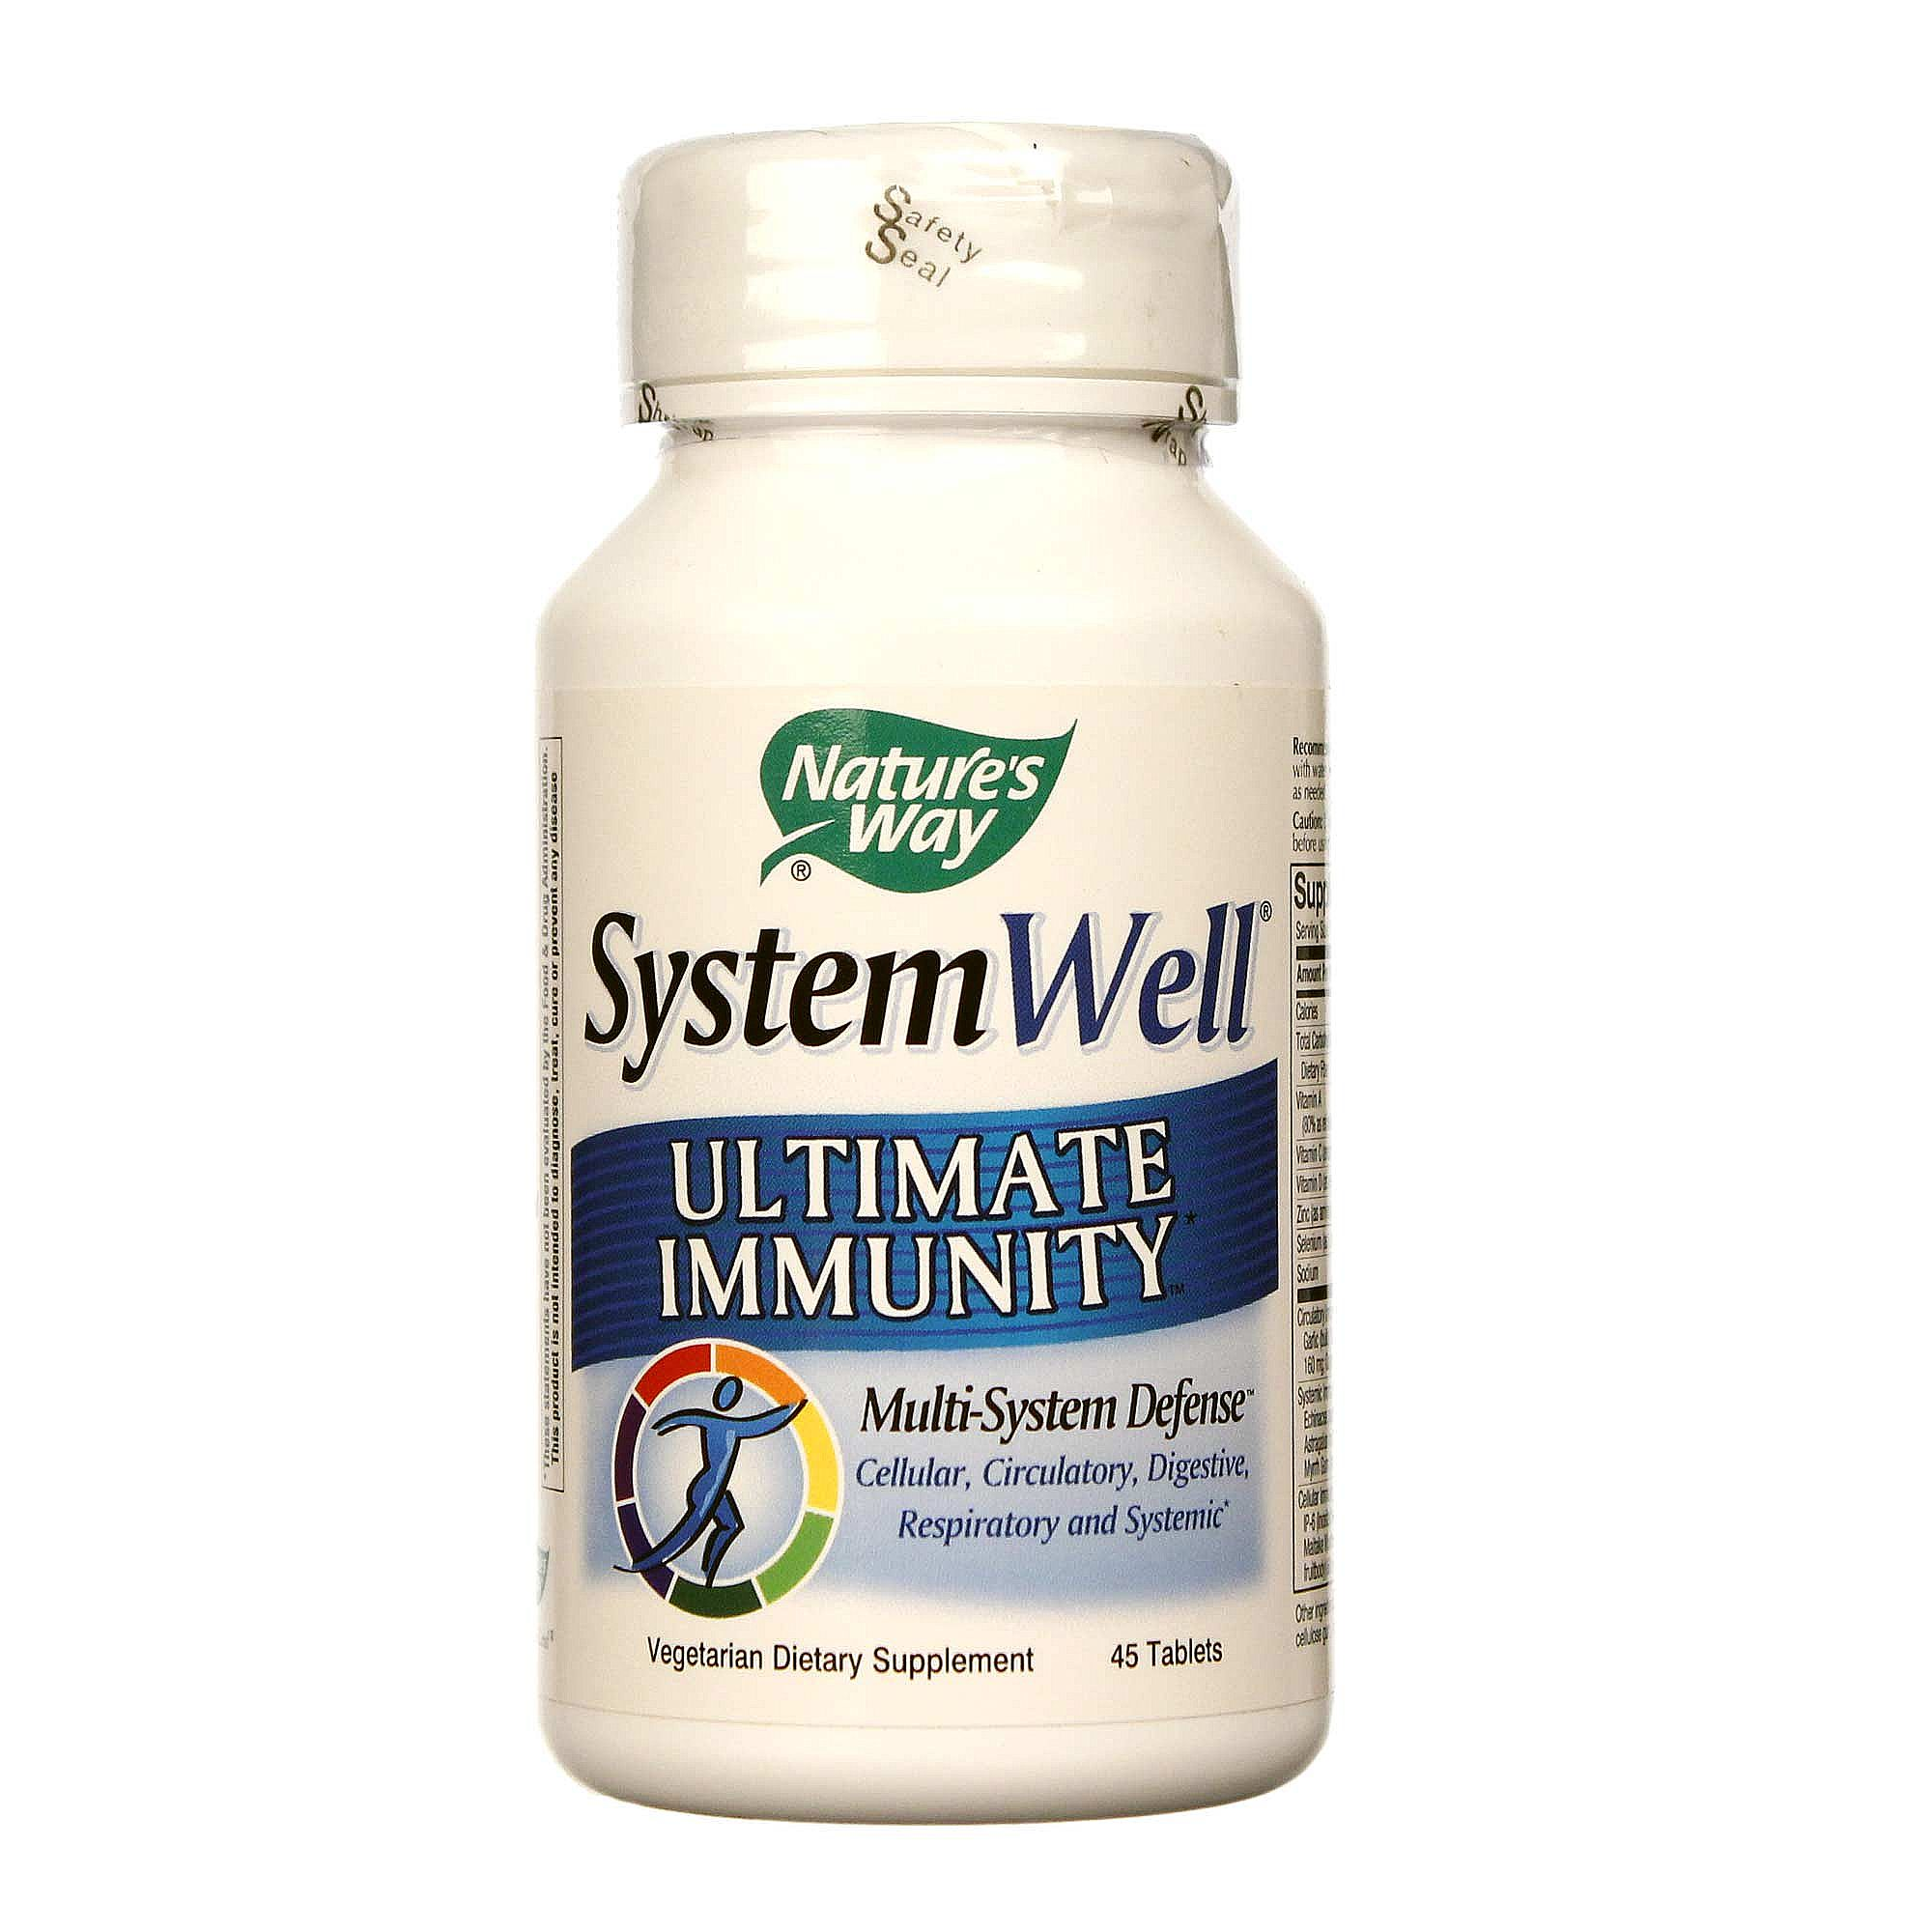 way well system ultimate immunity nature tablets natures evitamins